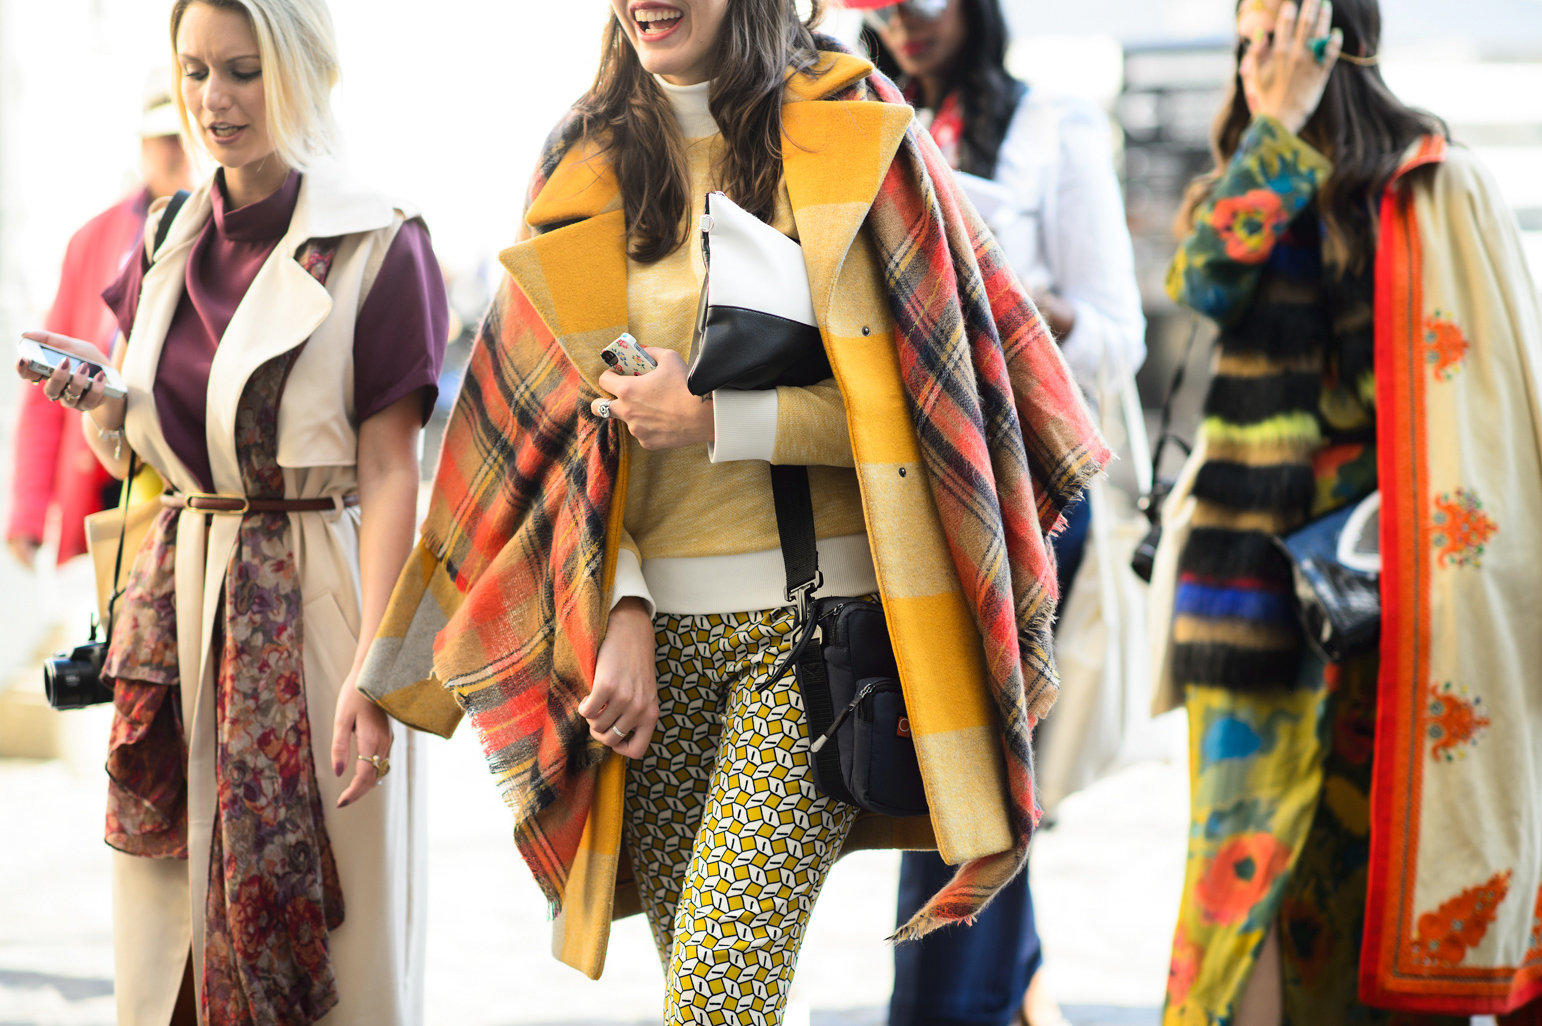 london-spring-2015-street-style-day-1-15-w-mag5